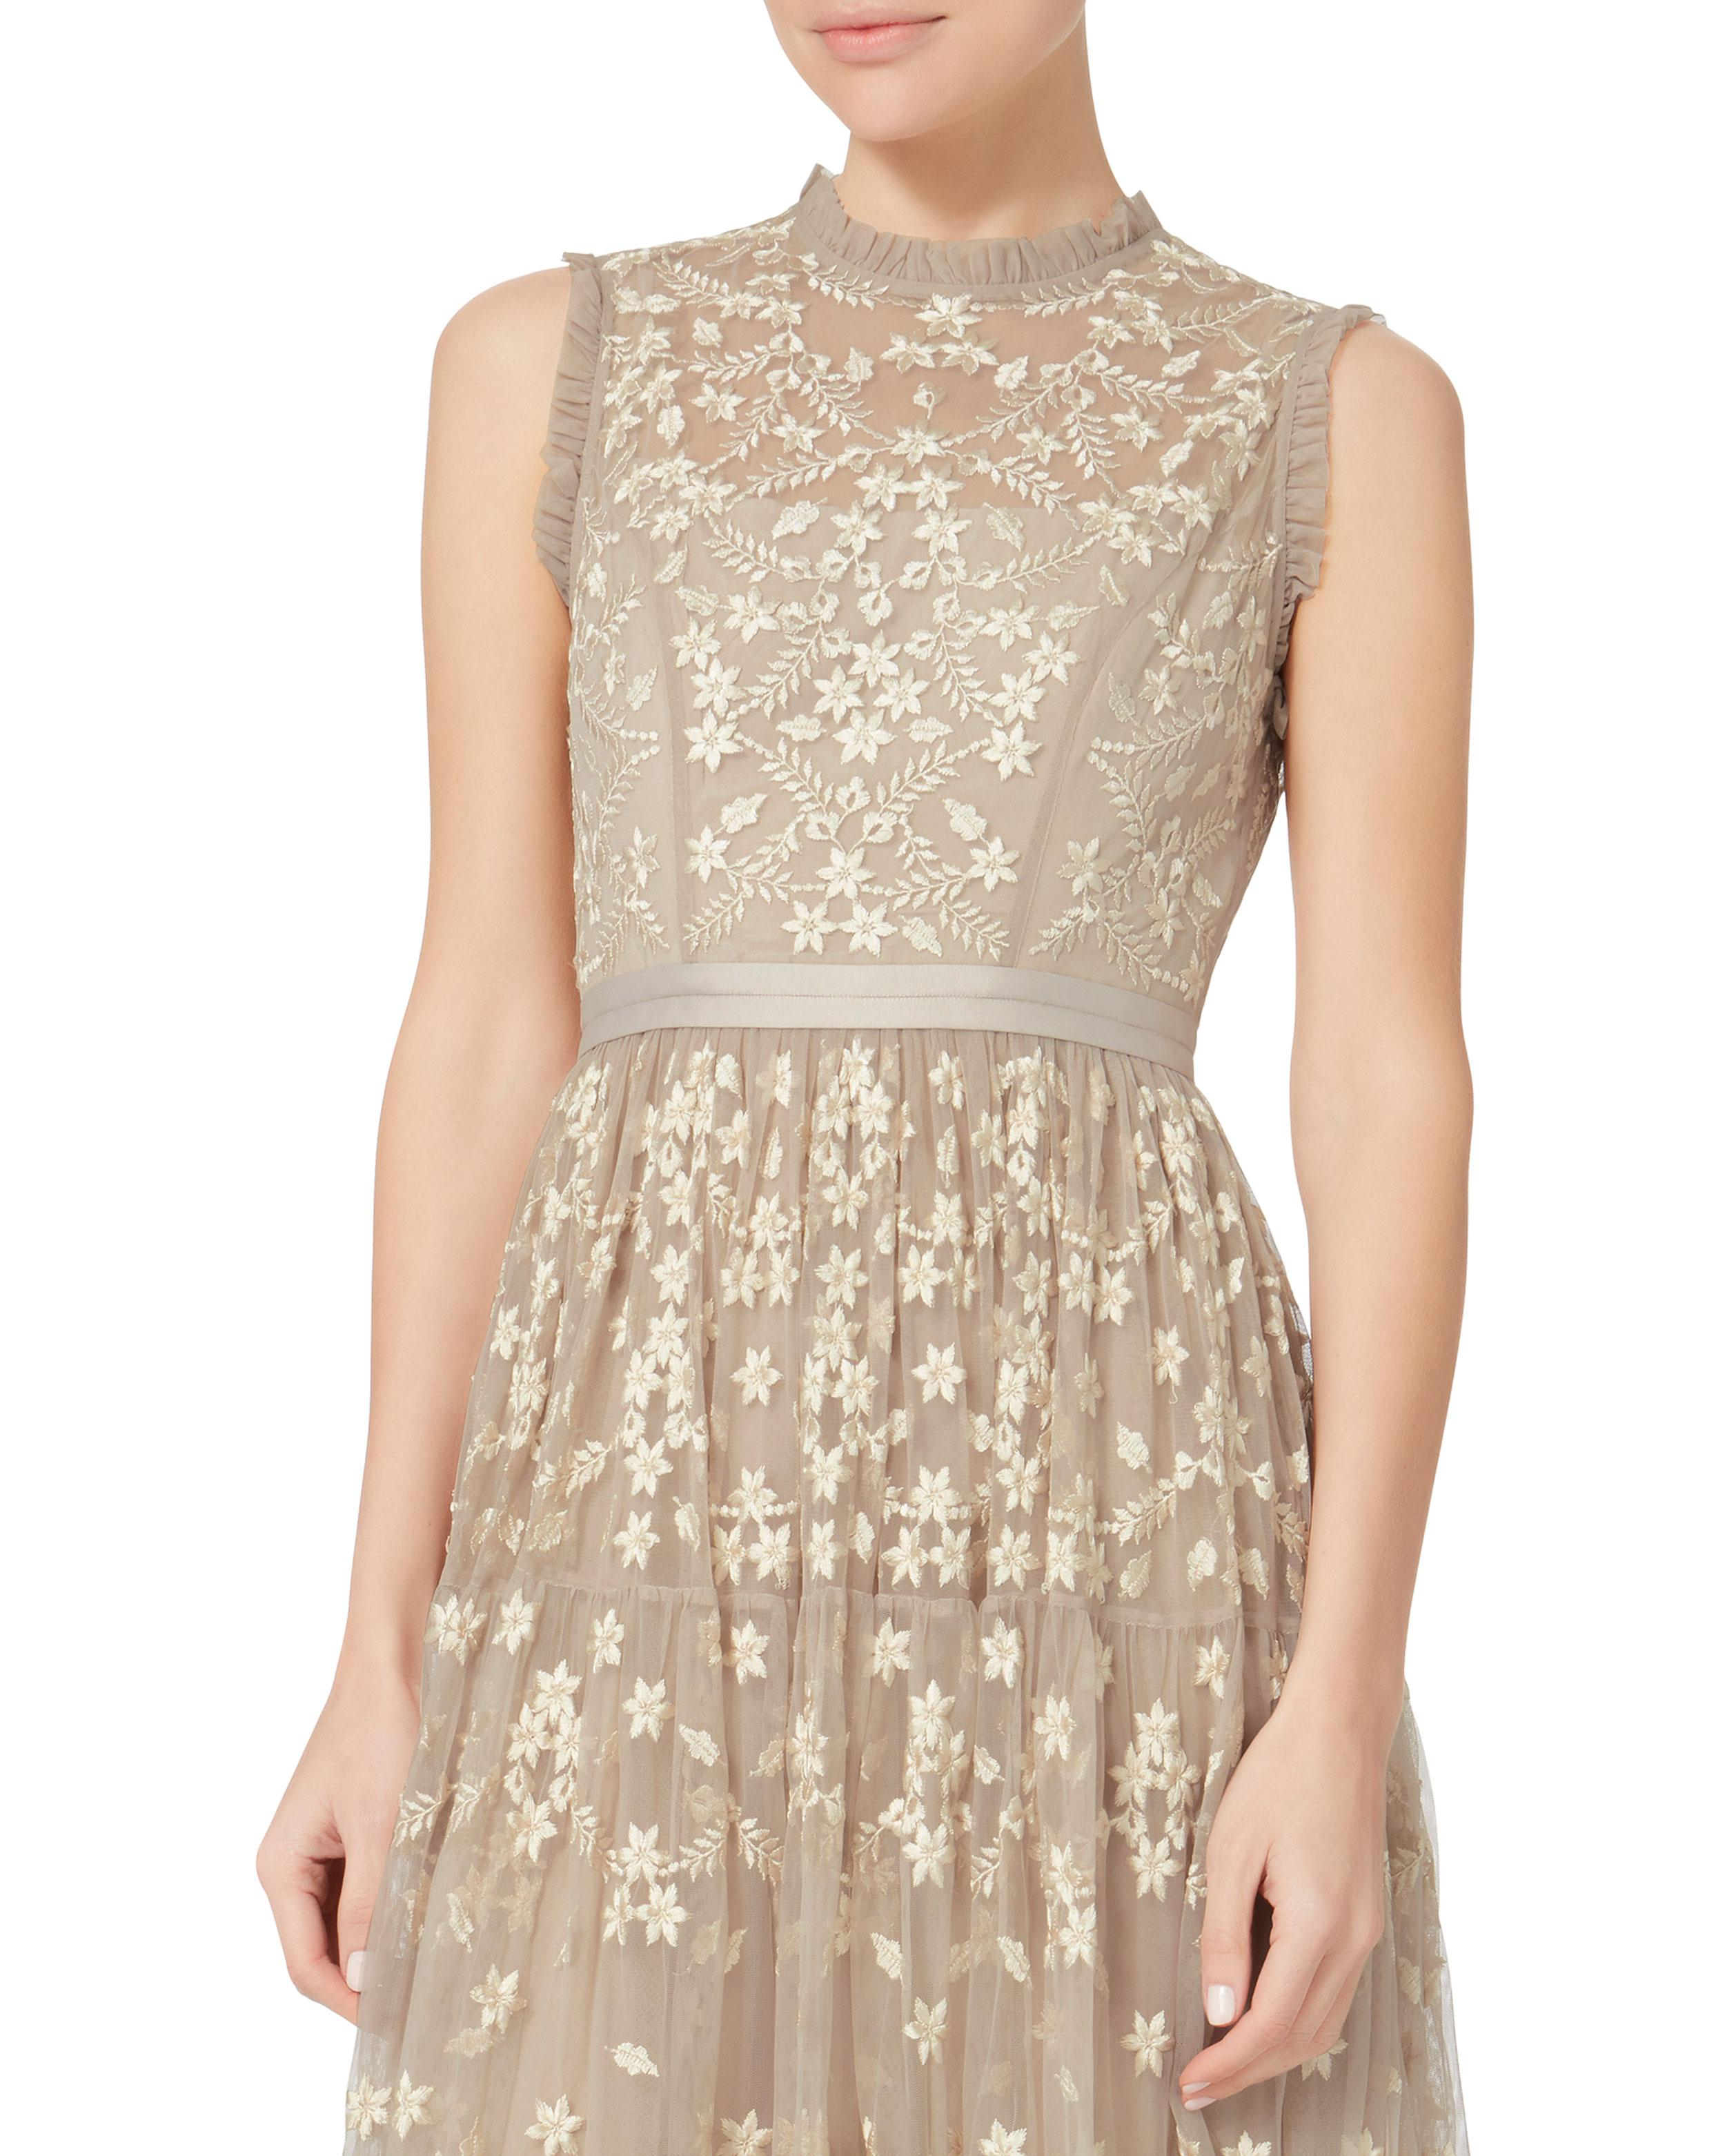 Lyst - Needle & Thread Clover-embellished Gown in Natural